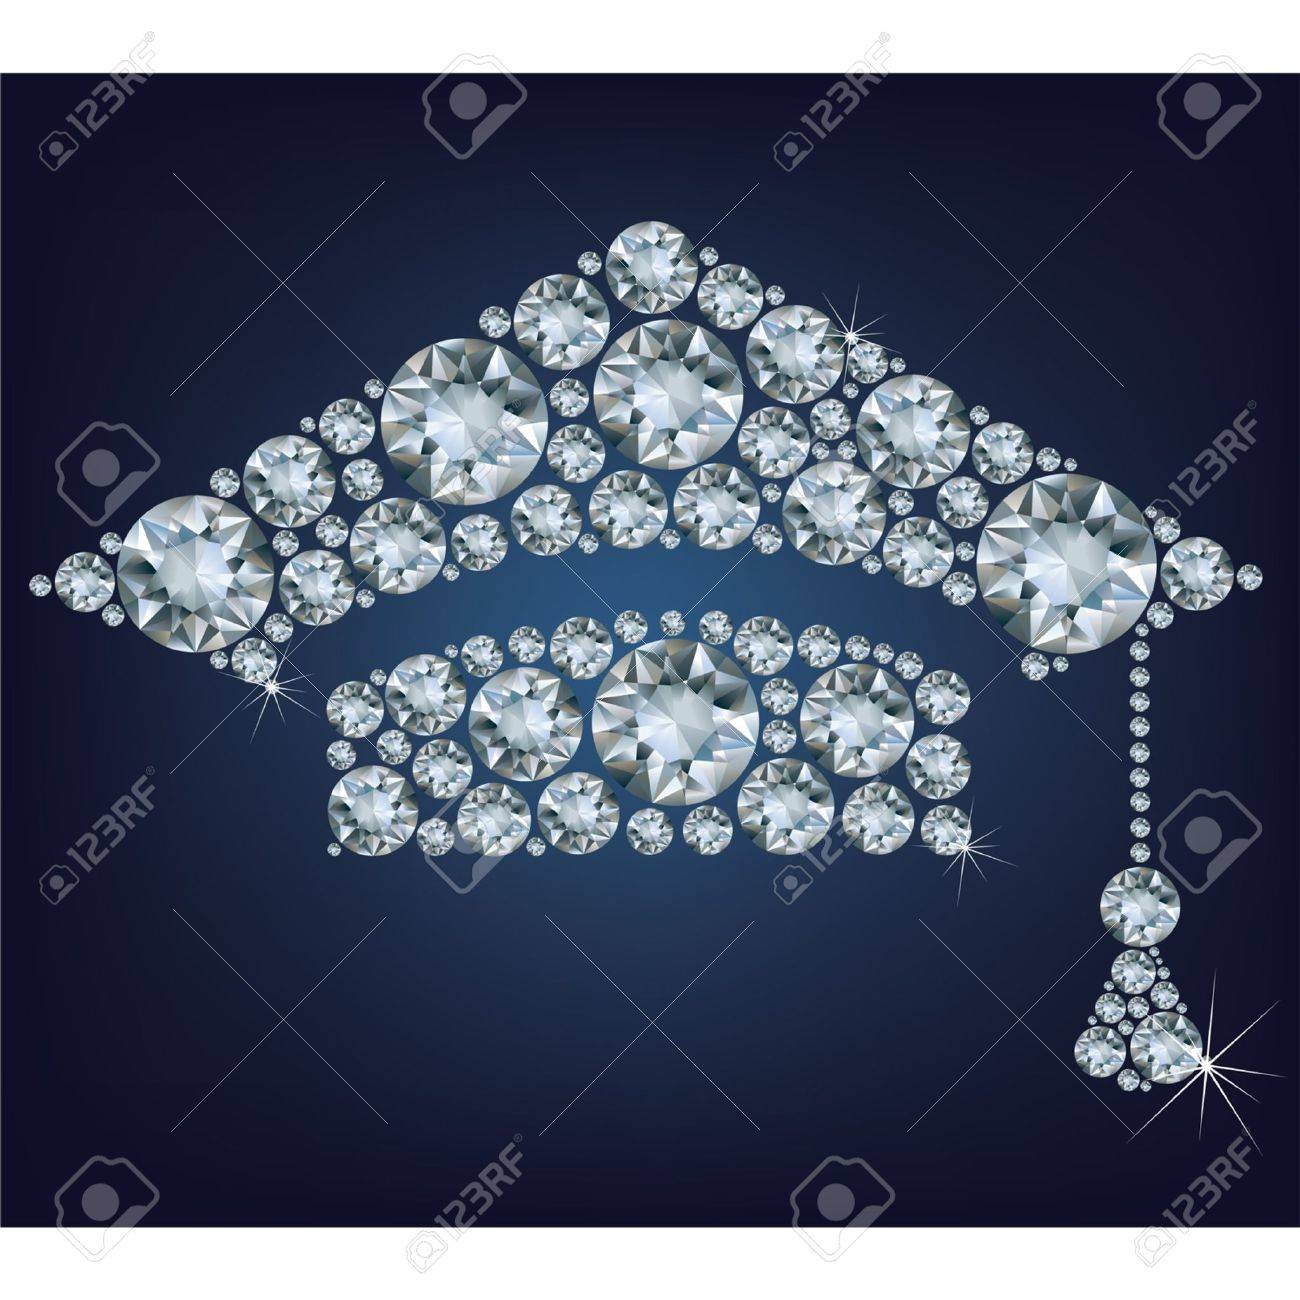 Education Cup made from diamonds Stock Vector - 19560827